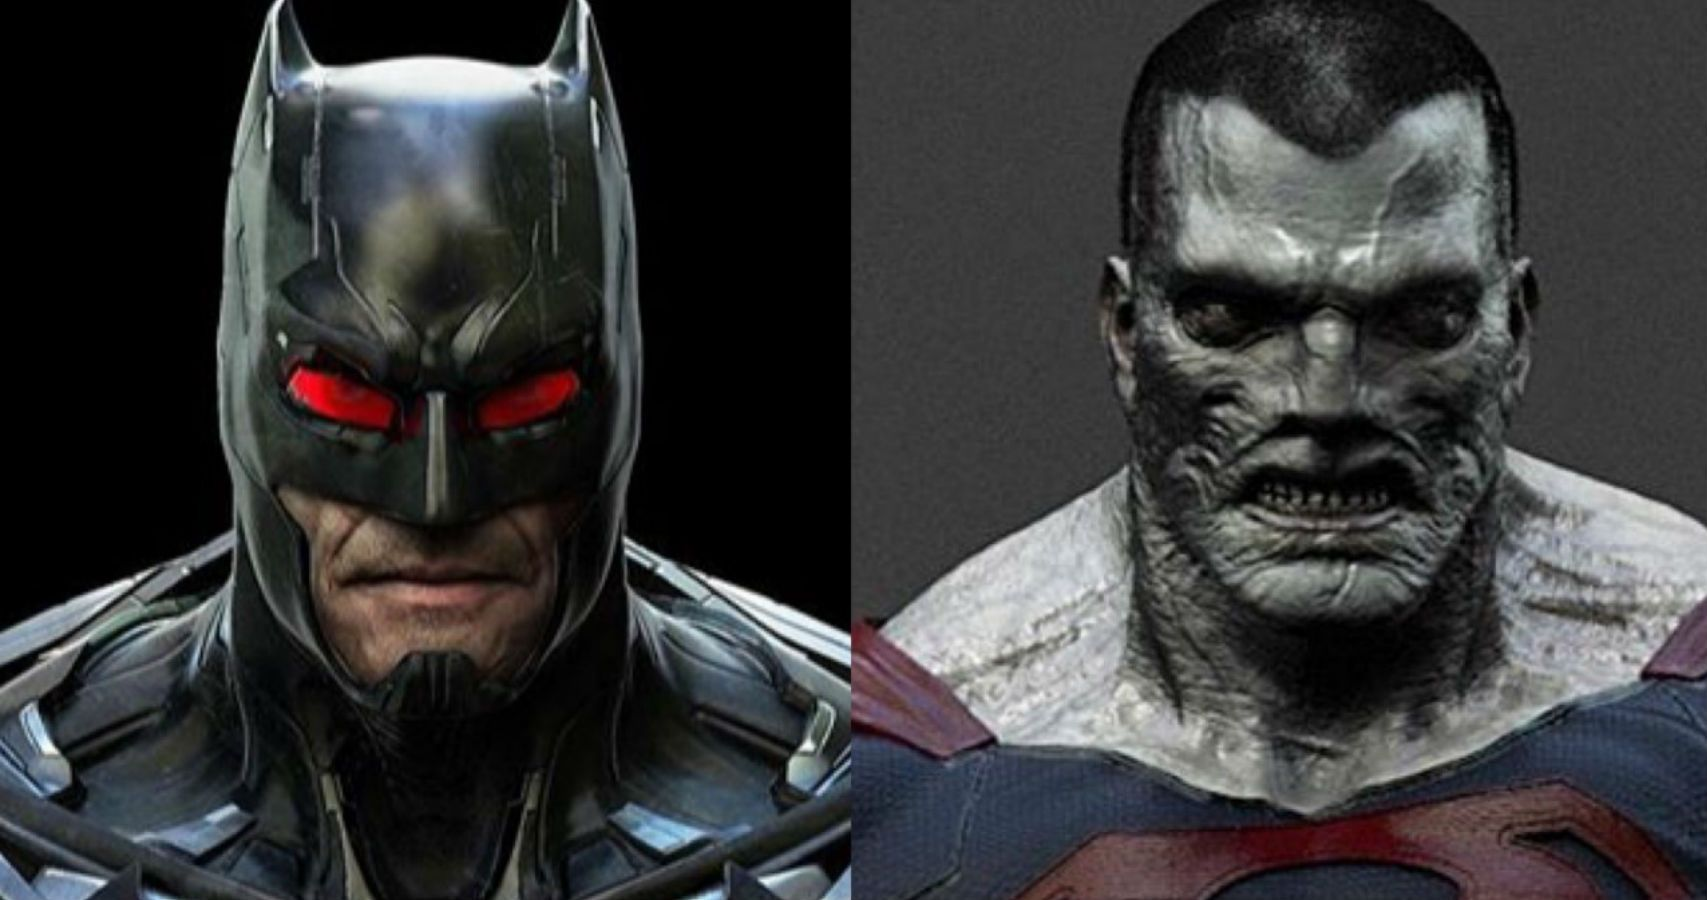 Batman, Bizarro, And King Shark Designs From Cancelled Game Surface Online